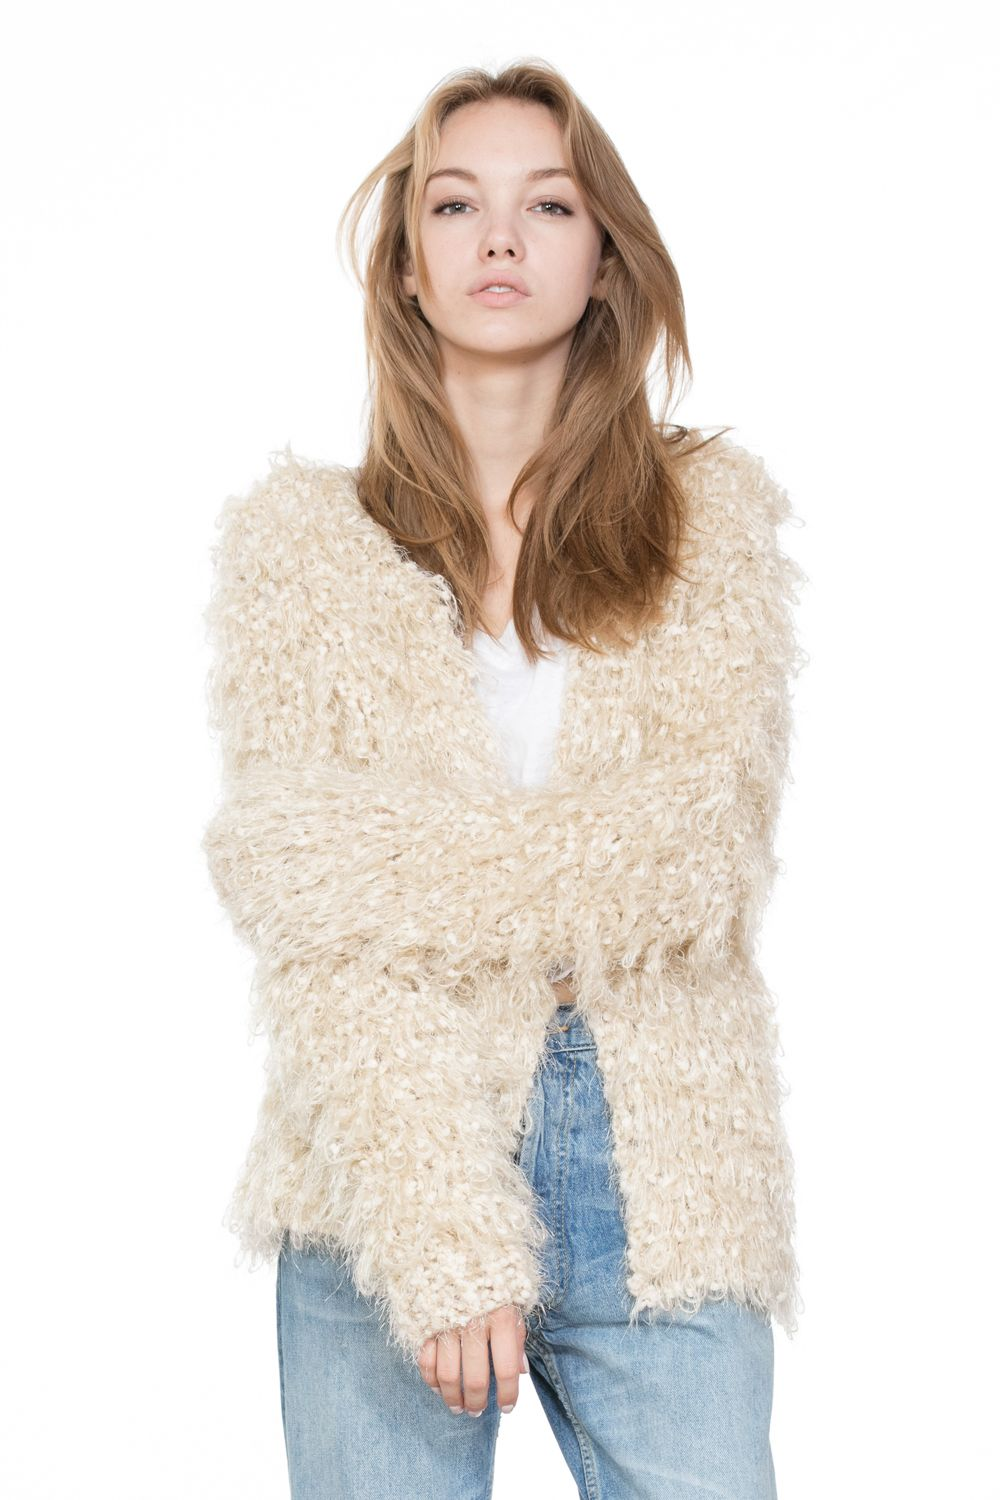 This Cream Fur Jacket looks amazing with any of your